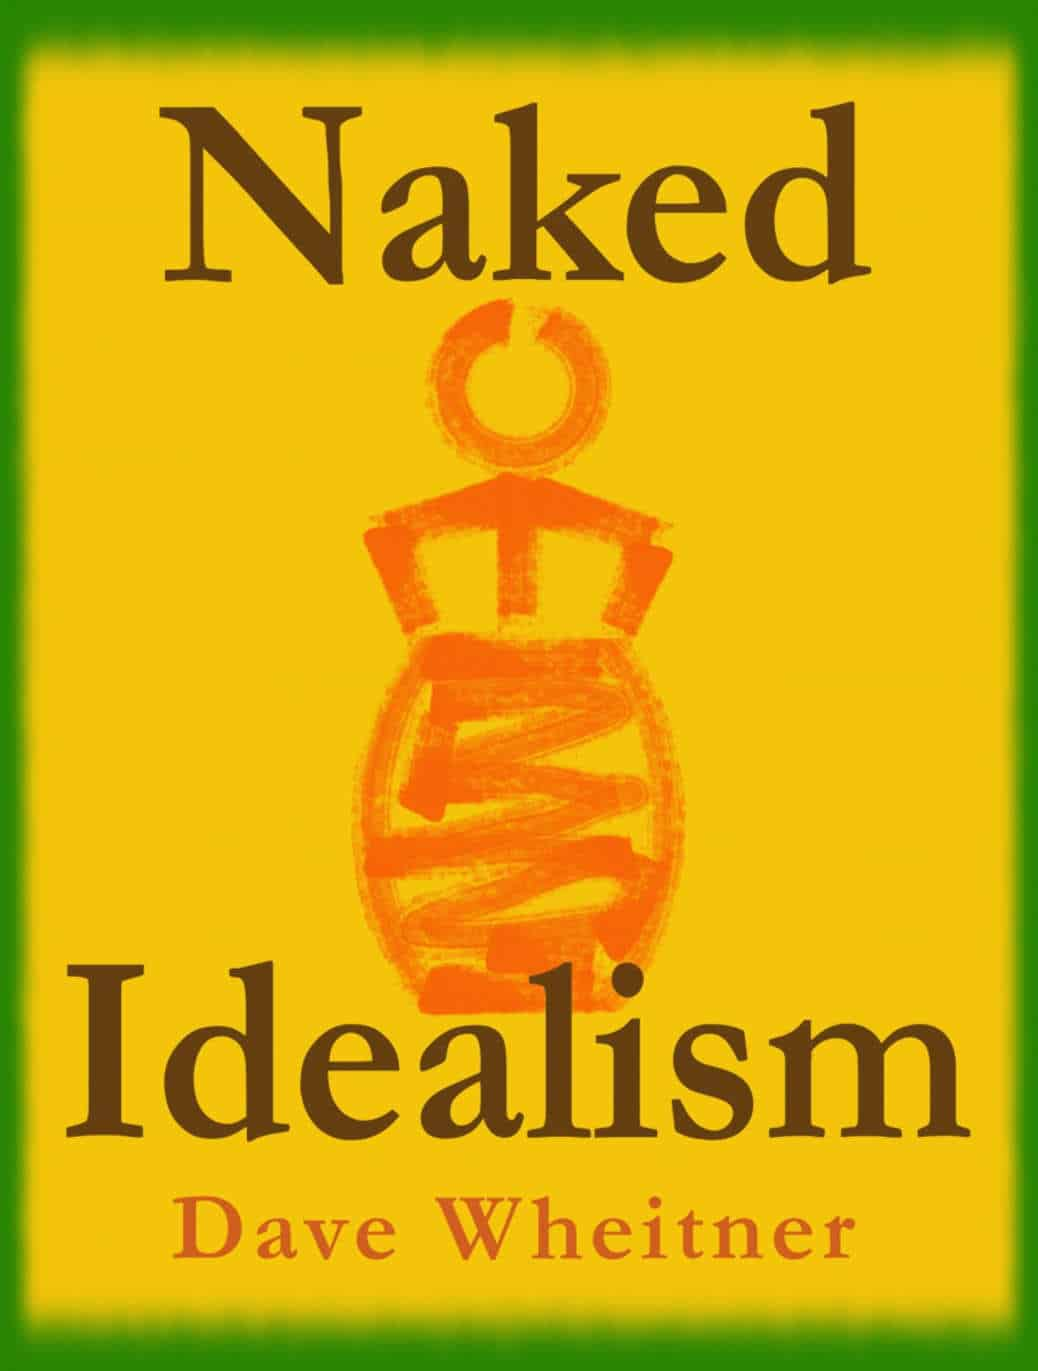 naked-idealism-cover-web-1038px2